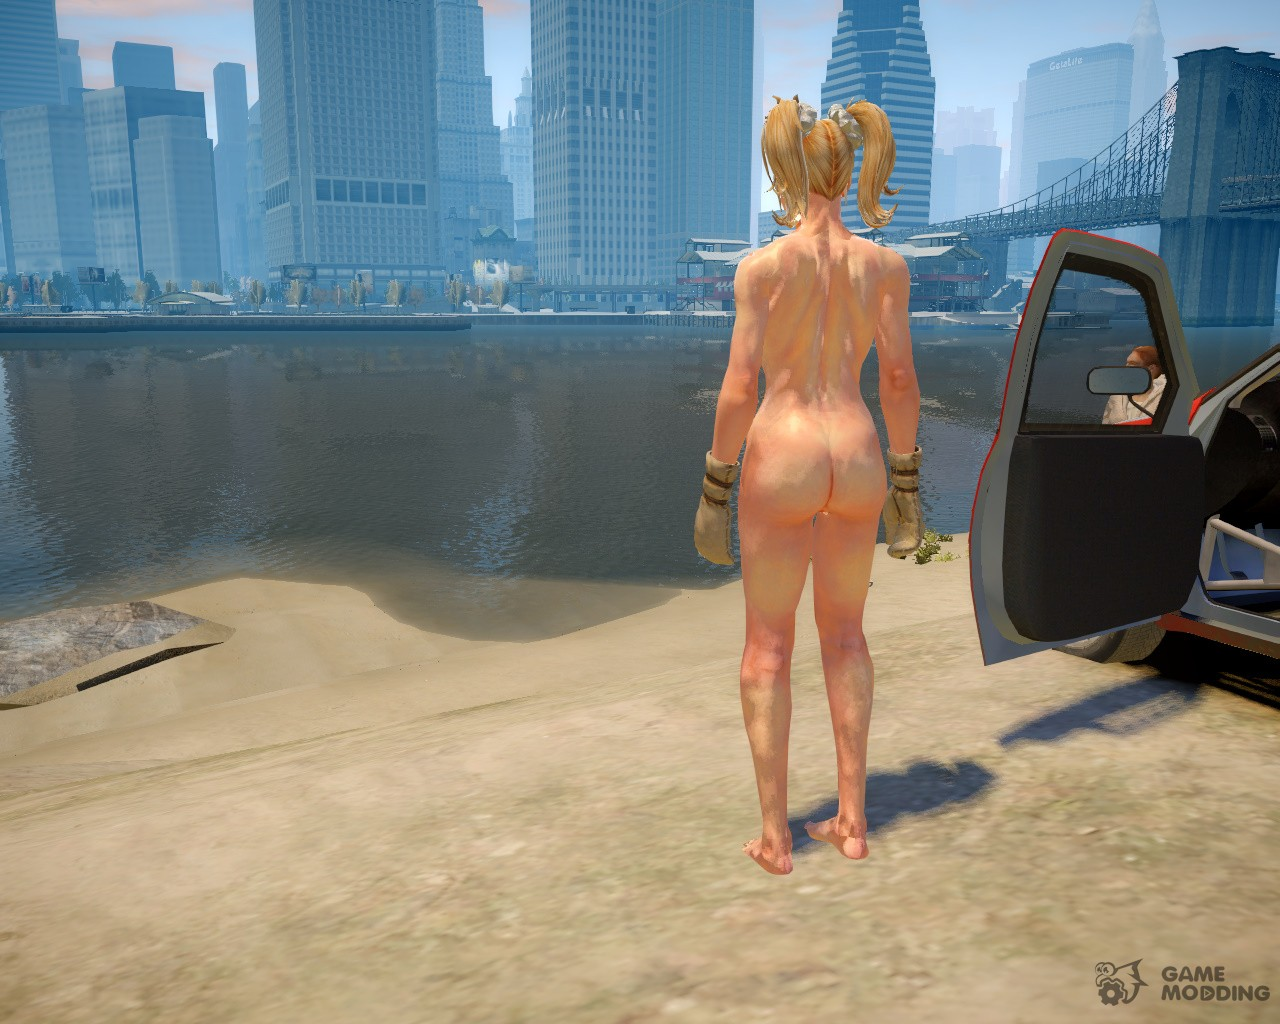 Gta nude women, screaming wifes black cock orgasim